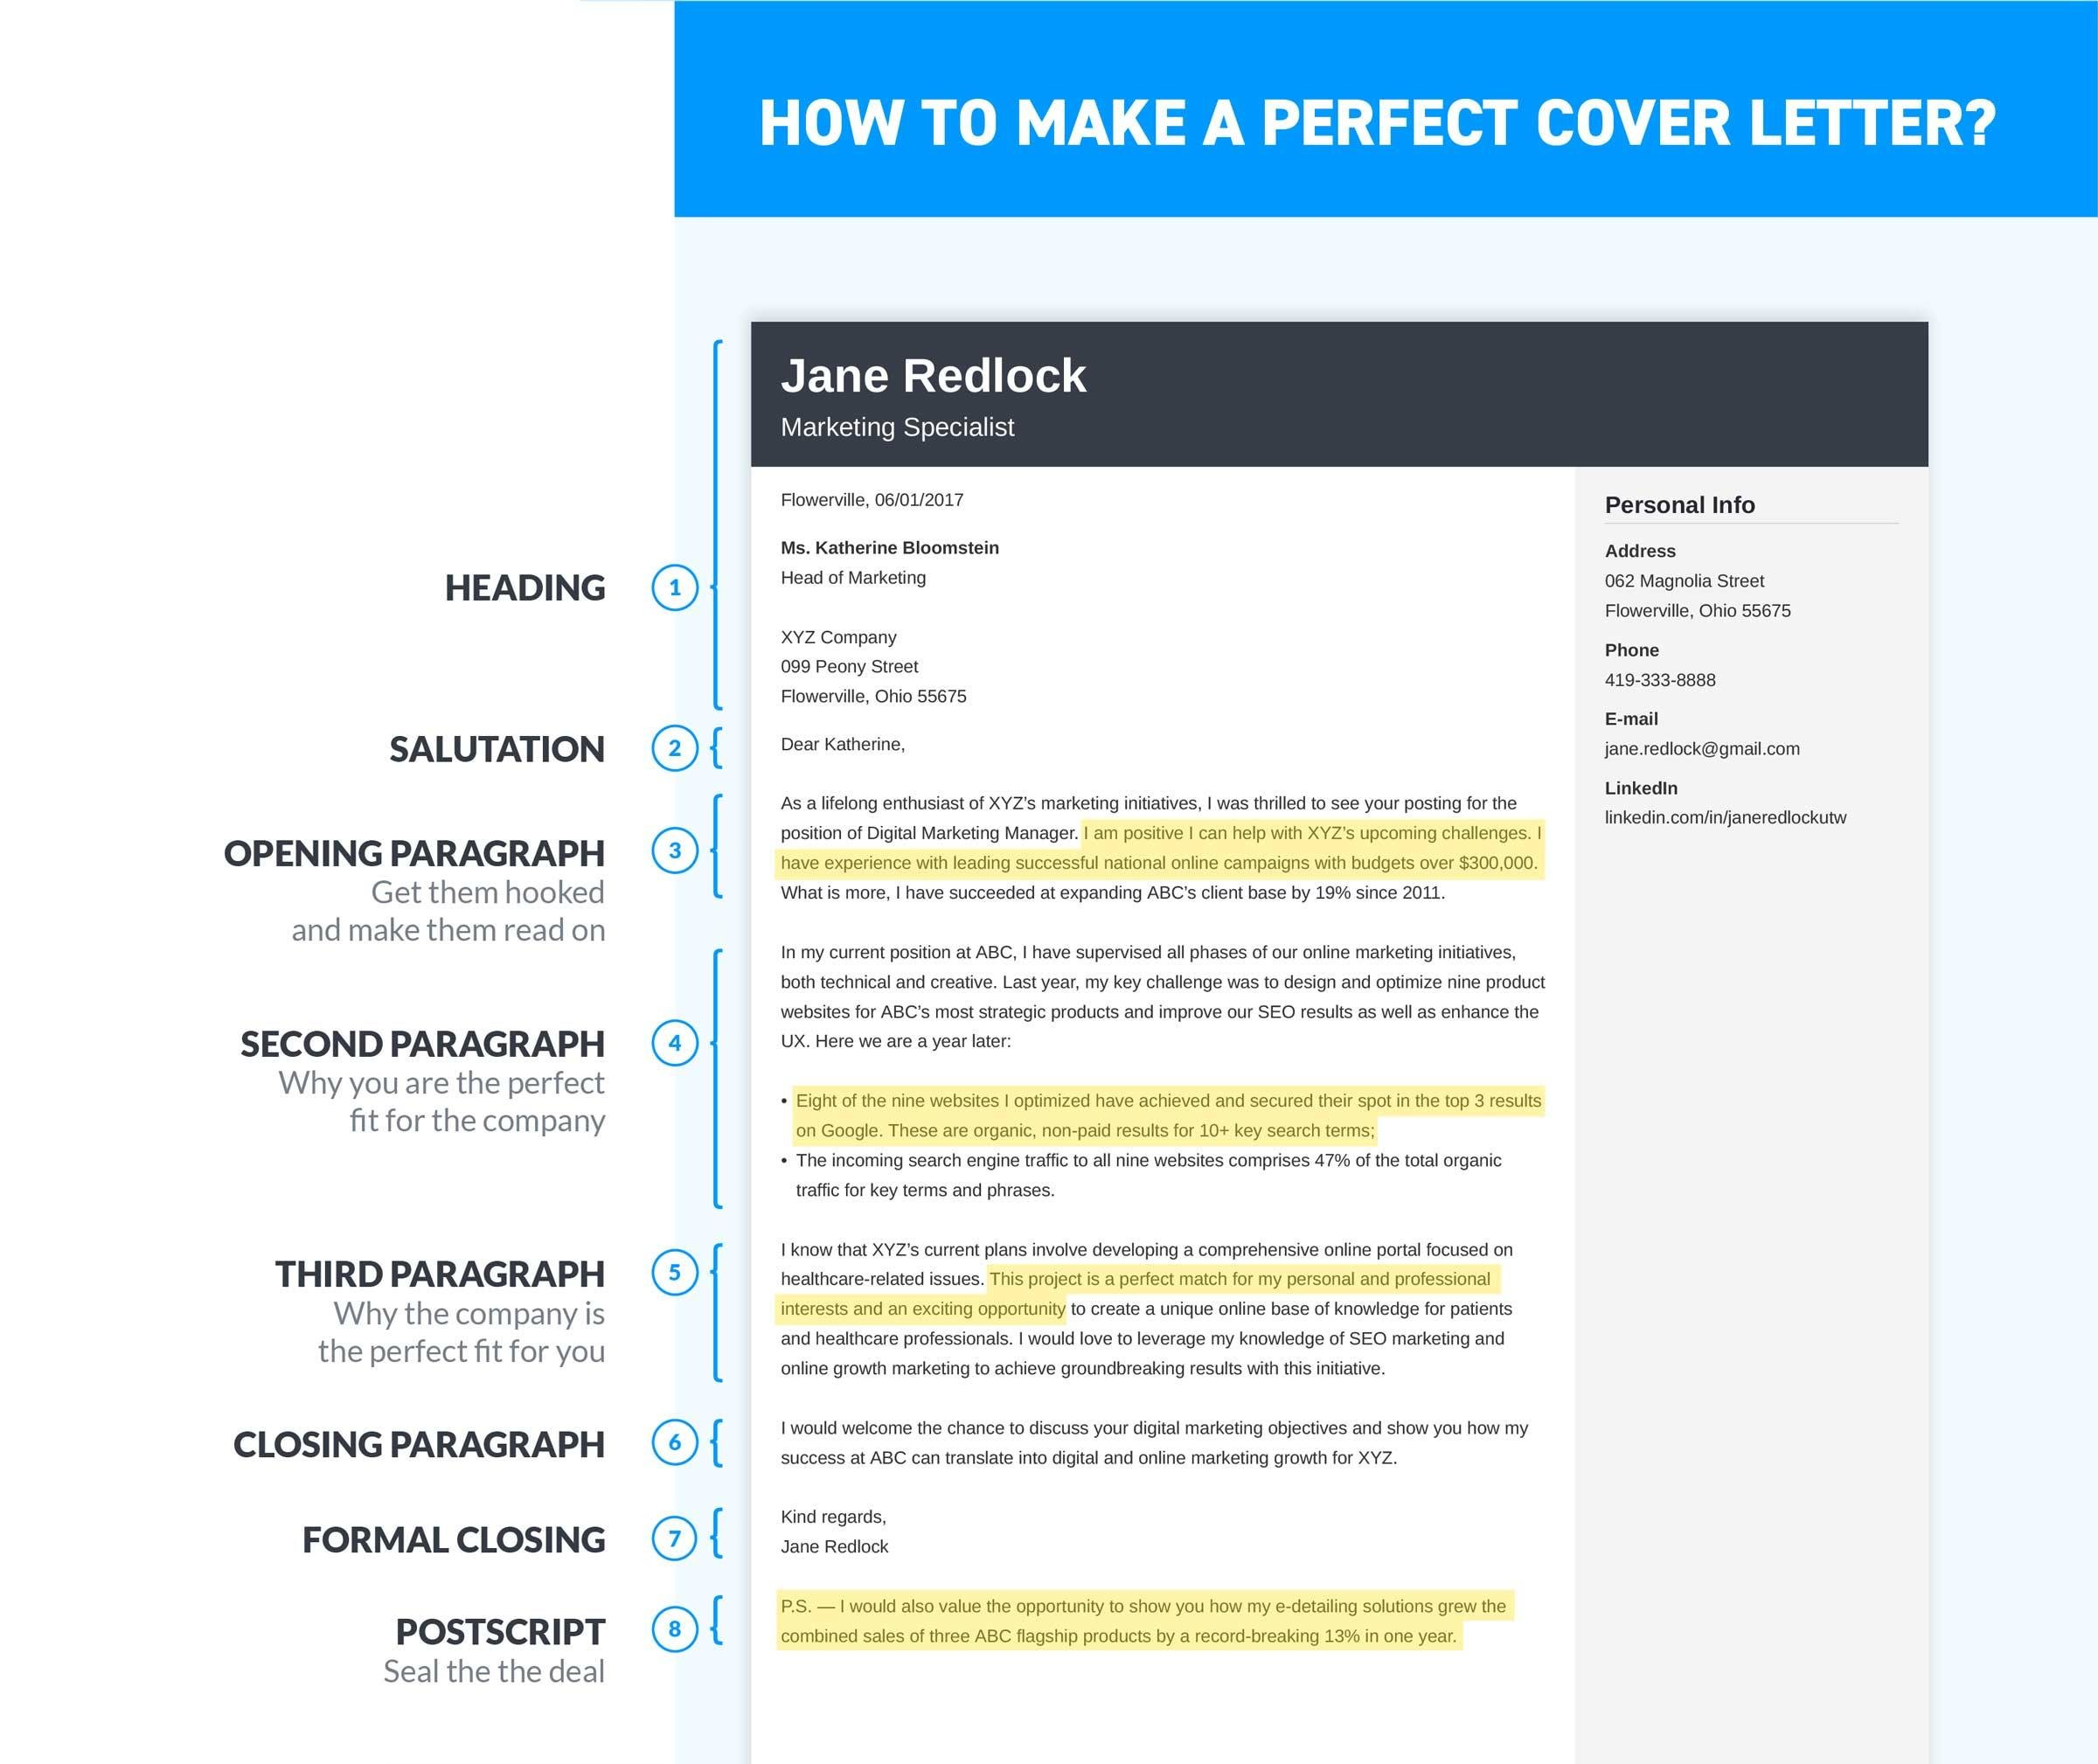 How To Write A Cover Letter For A Job In 2020 12 Examples